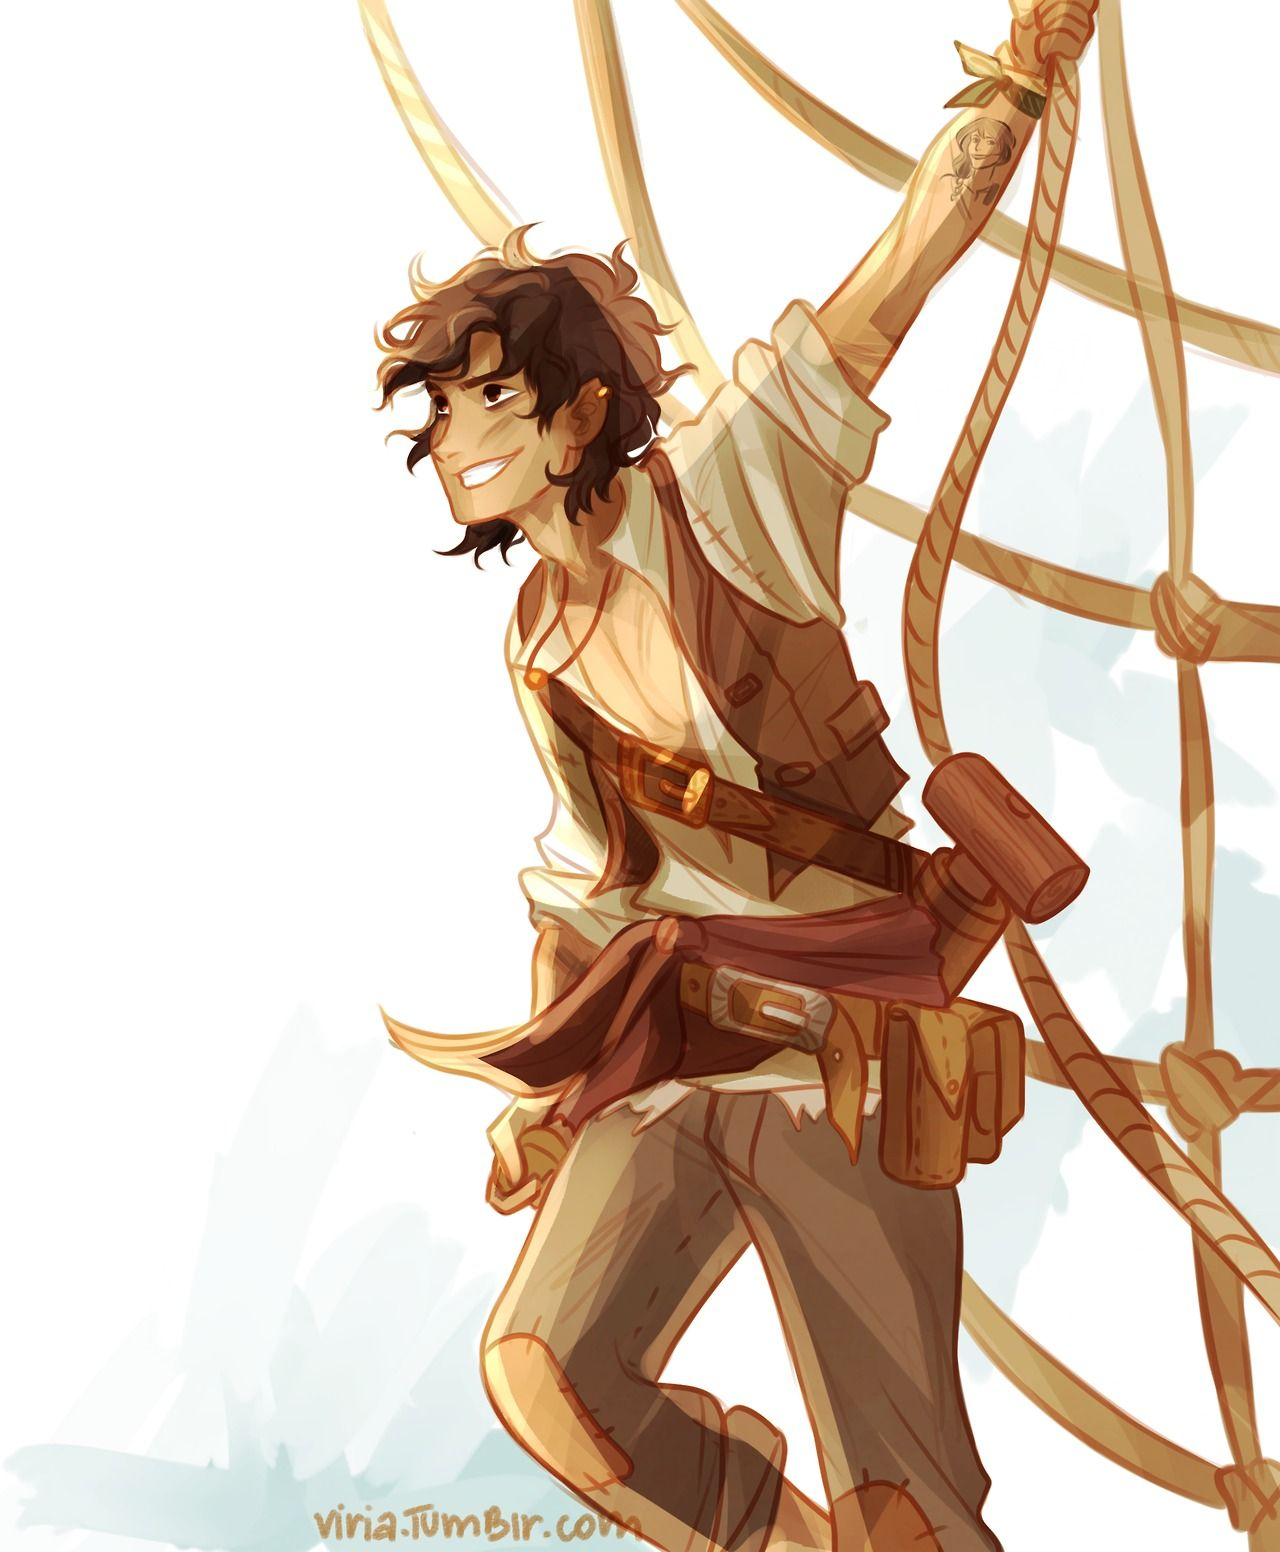 pirate!Leo for reasons. by Viria on tumblr